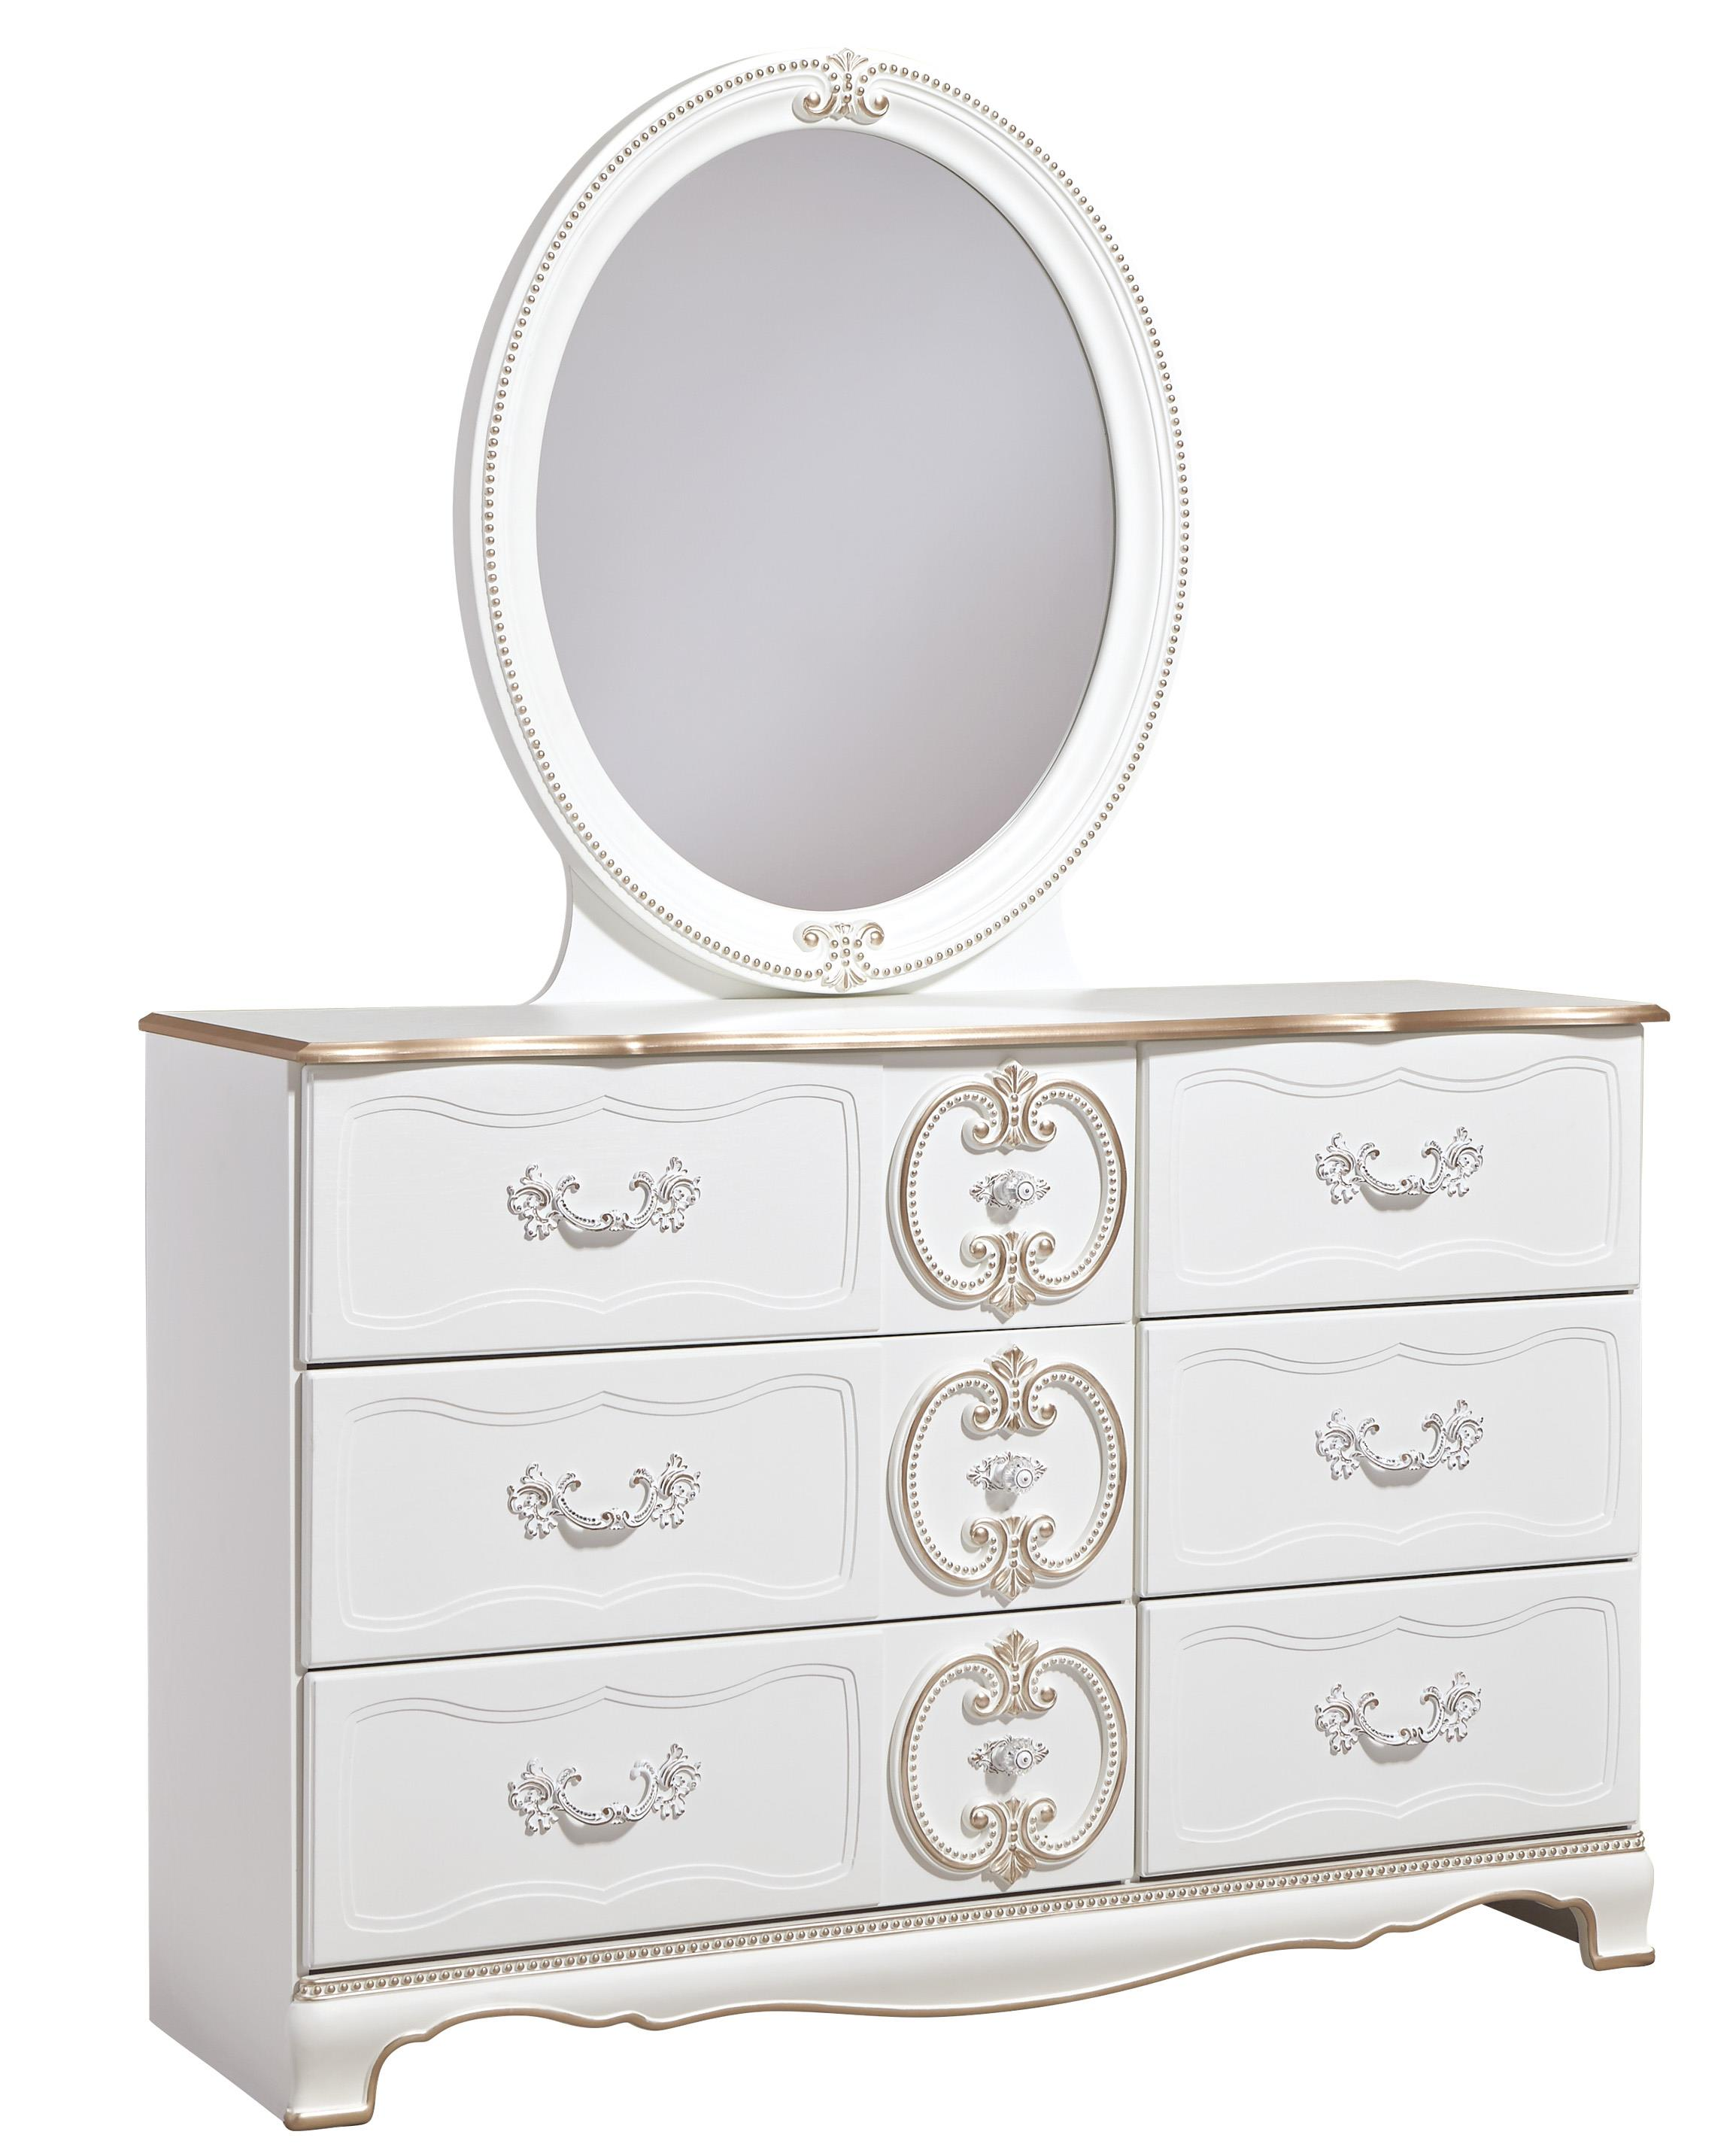 Signature Design by Ashley Korabella Dresser & Bedroom Mirror - Item Number: B355-21+26